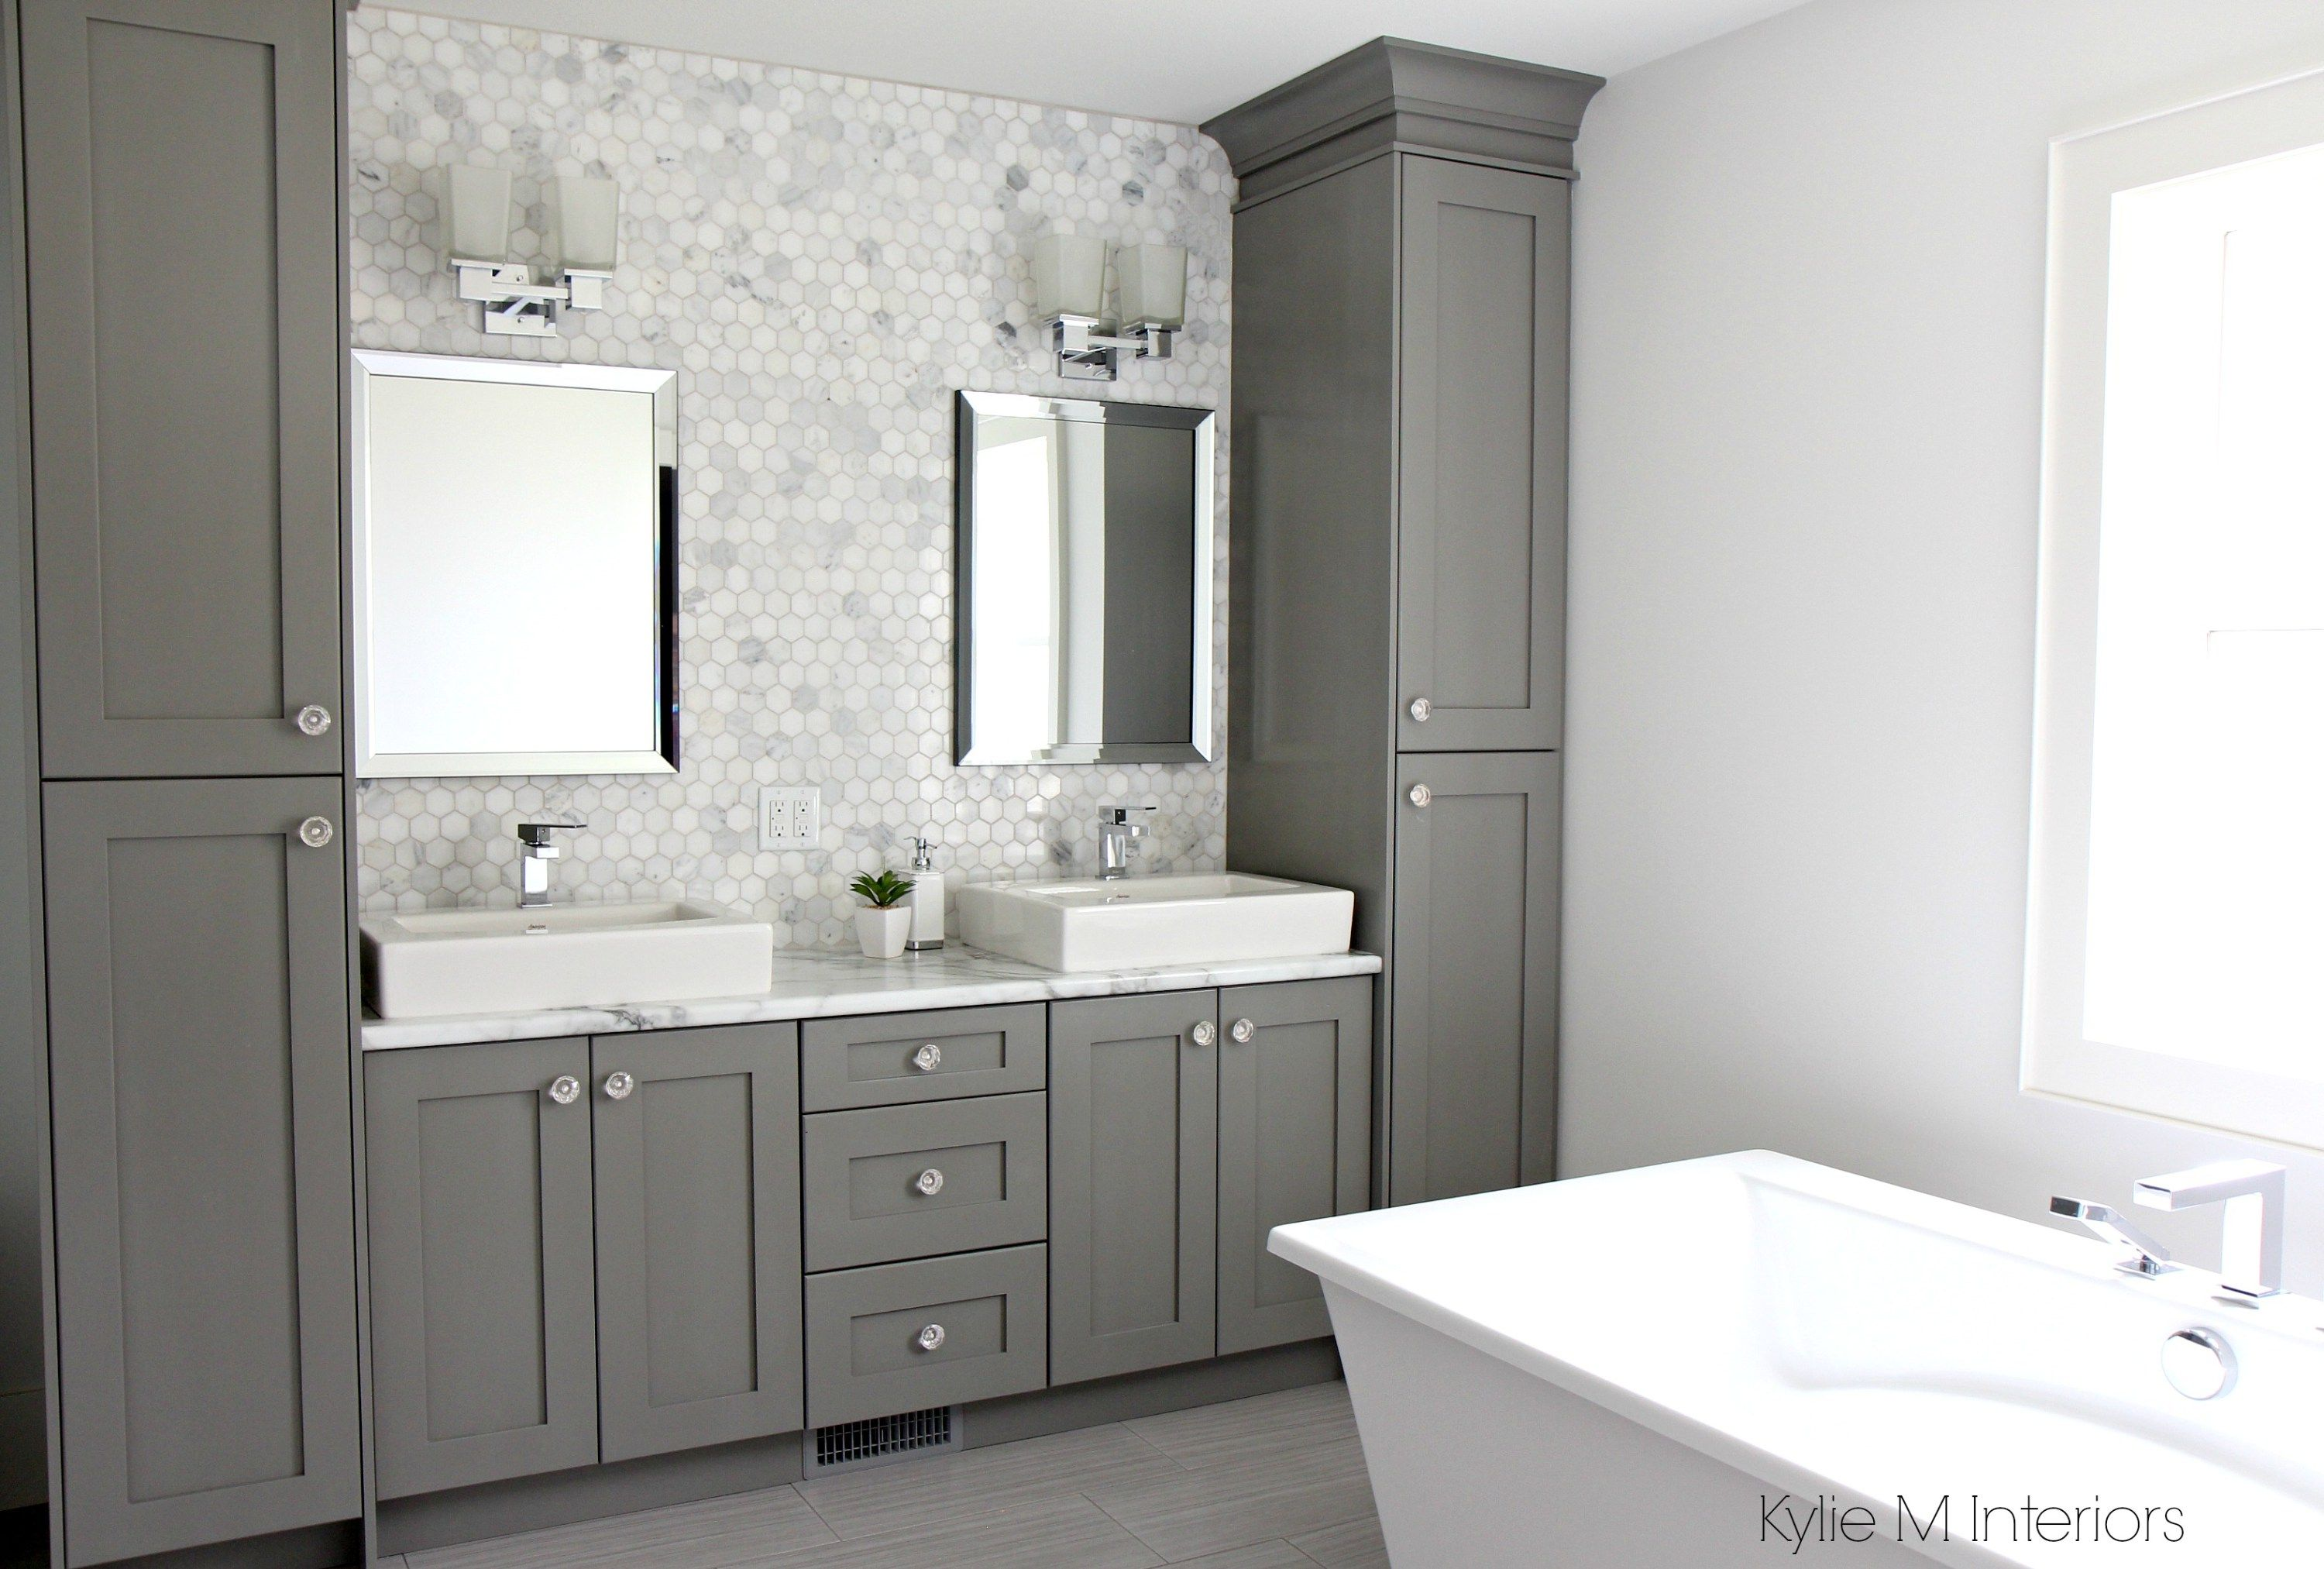 A Marble Inspired Ensuite Bathroom Budget Friendly Too Bathroom Vanity Designs Bathroom Vanity Storage Bathroom Storage Tower